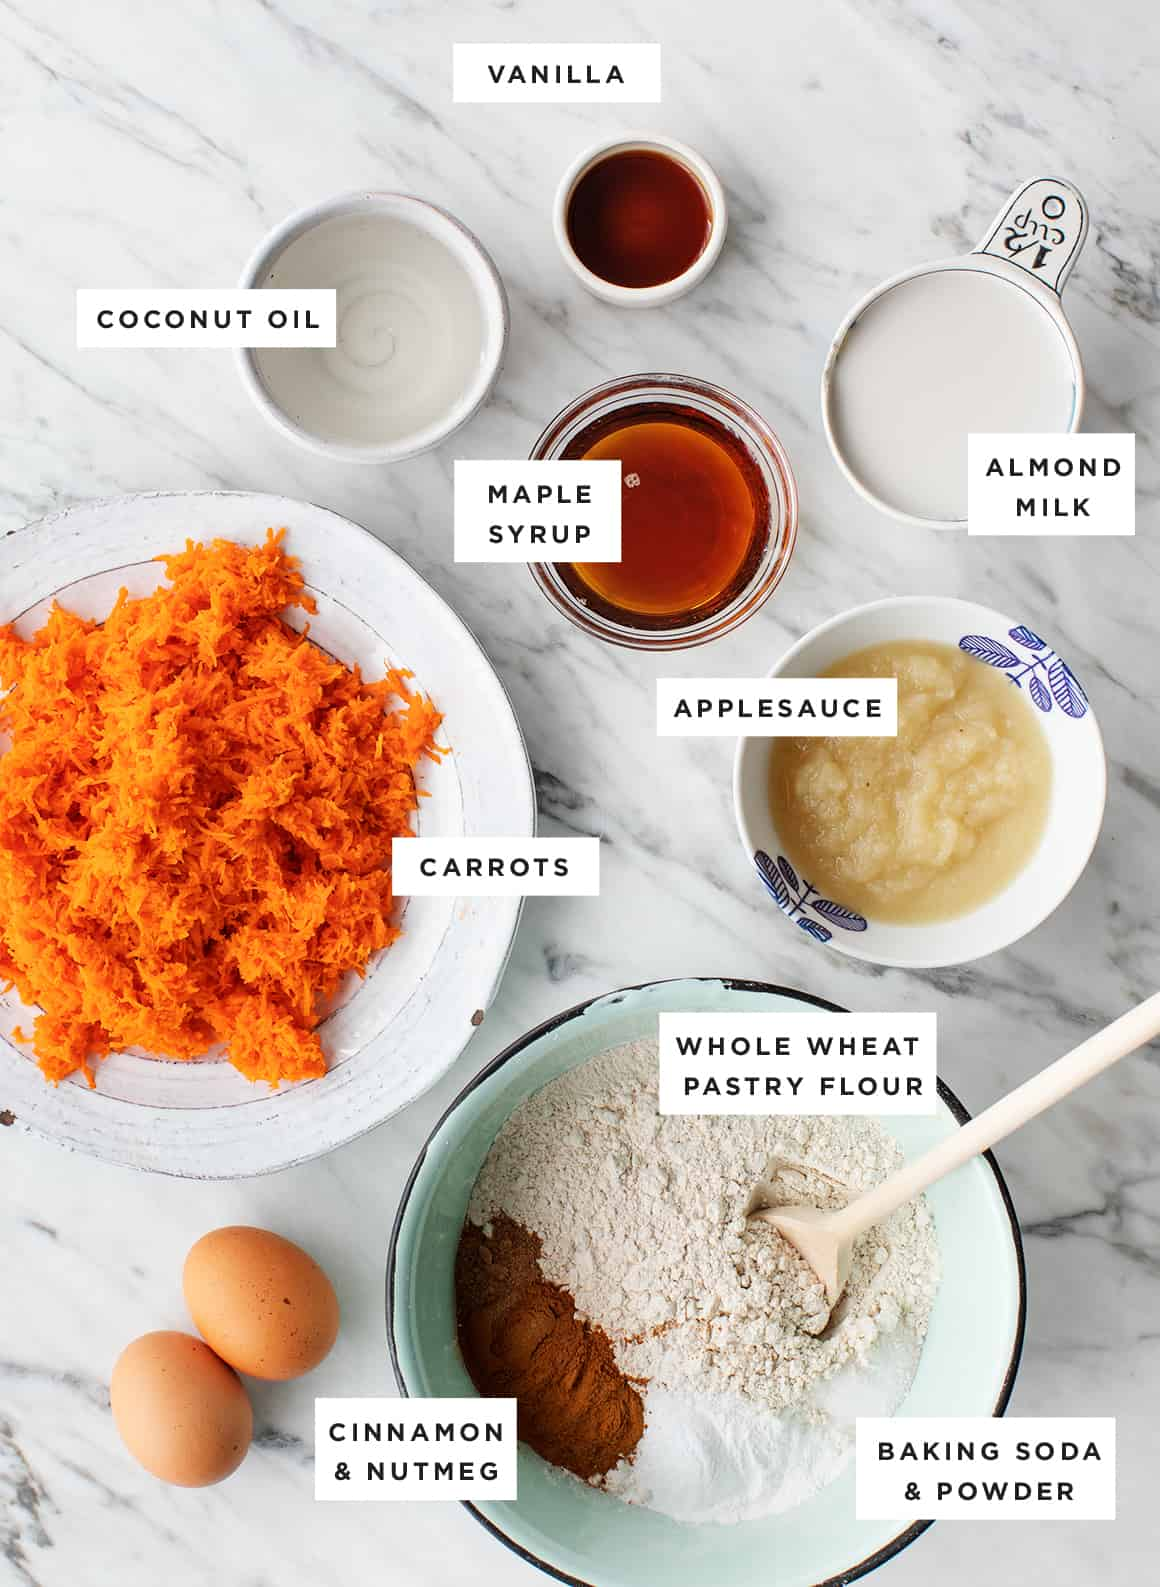 Best Carrot Cake Recipe Ingredients